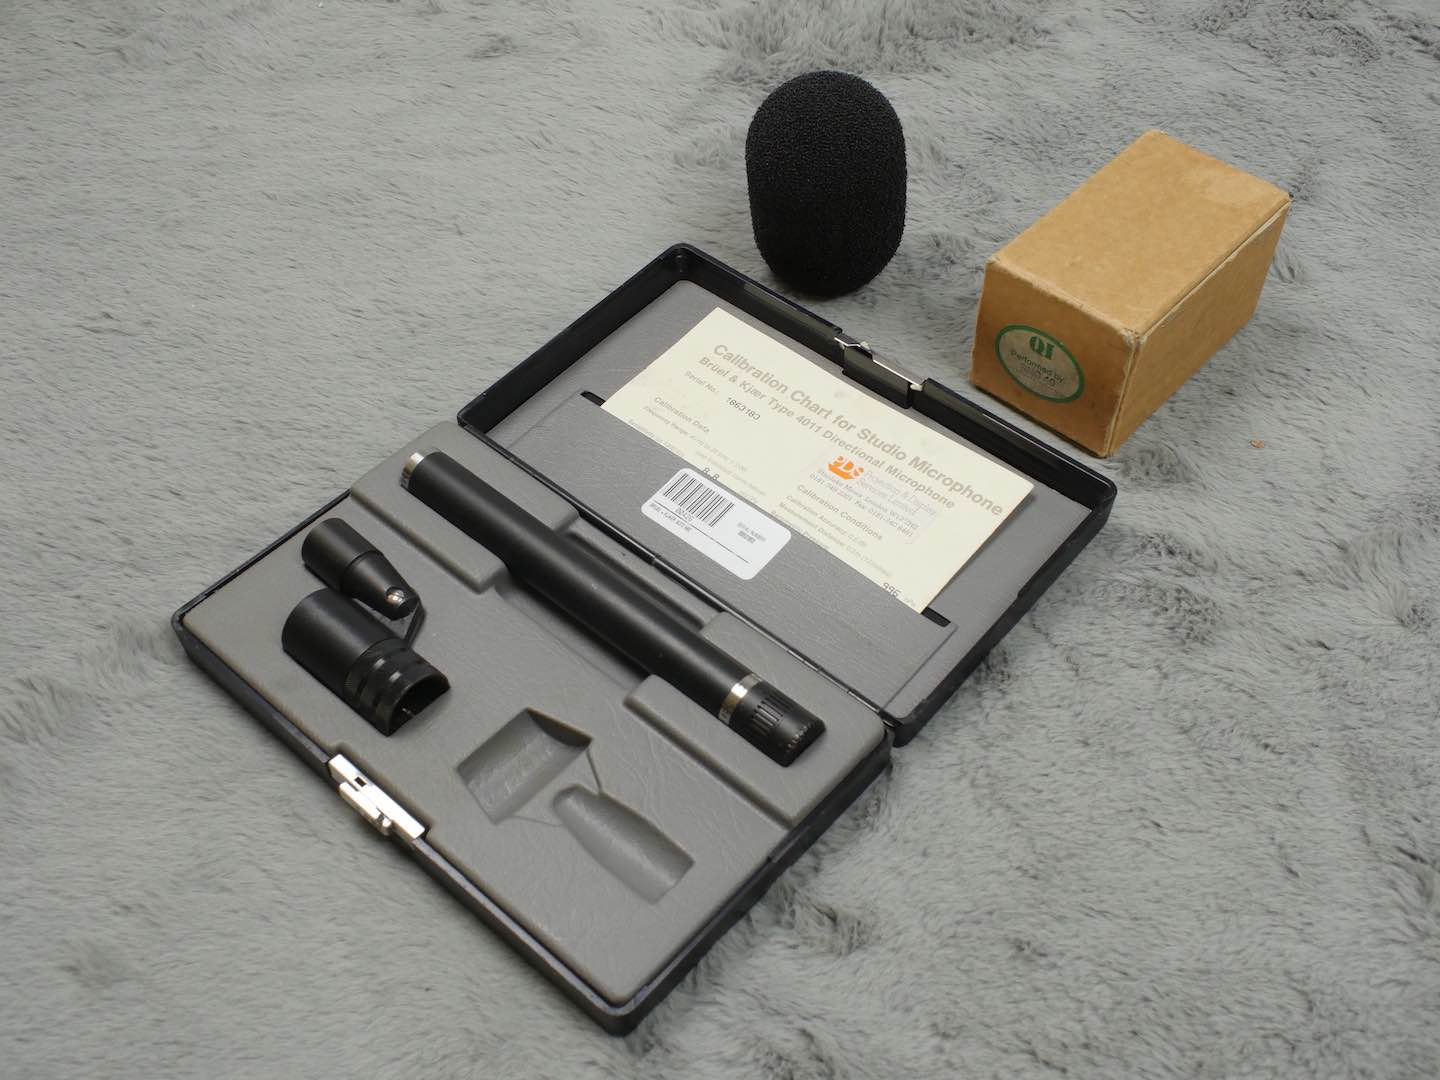 Bruel & Kjaer B&K DPA 4011 cardiod mic + mount, windshield and case